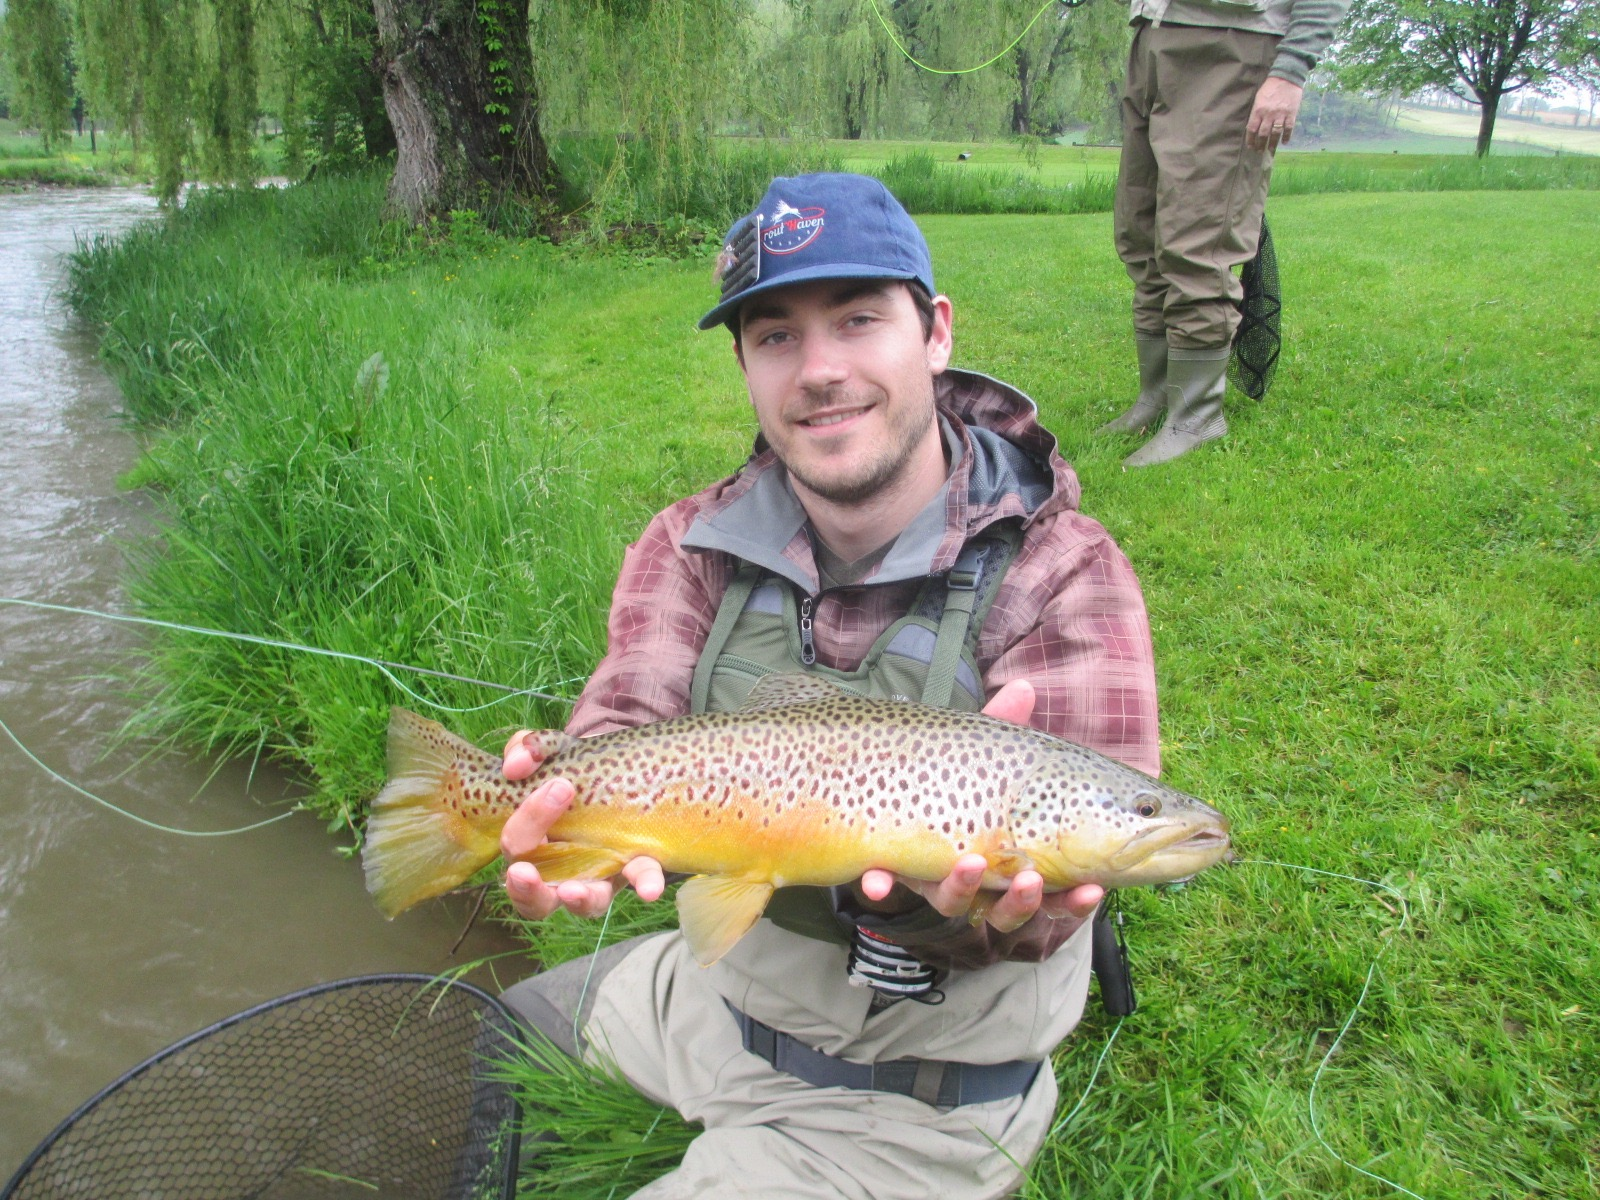 Central pa fly fishing spruce creek trout haven for Fly fishing pennsylvania